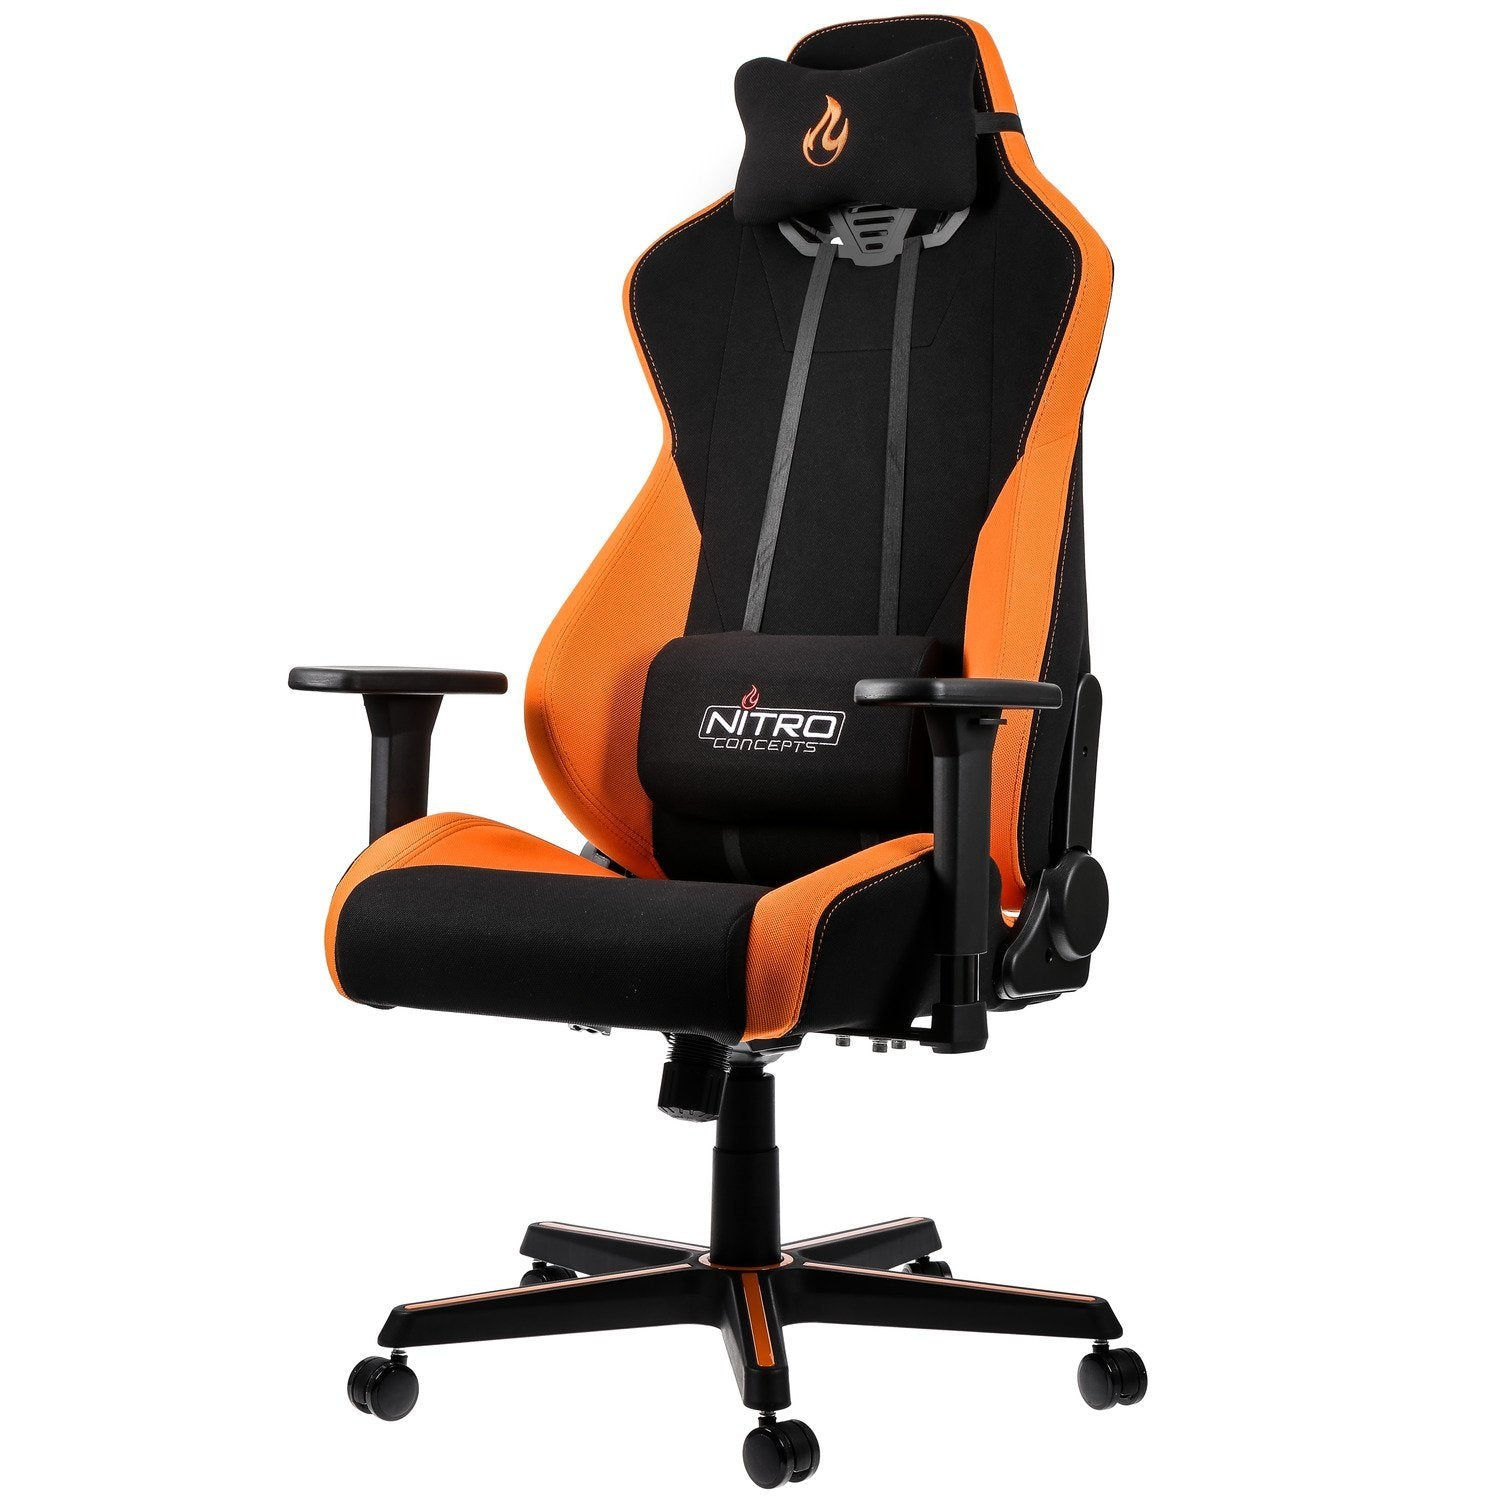 Nitro Concepts S300 Gaming Chair - Horizon Orange